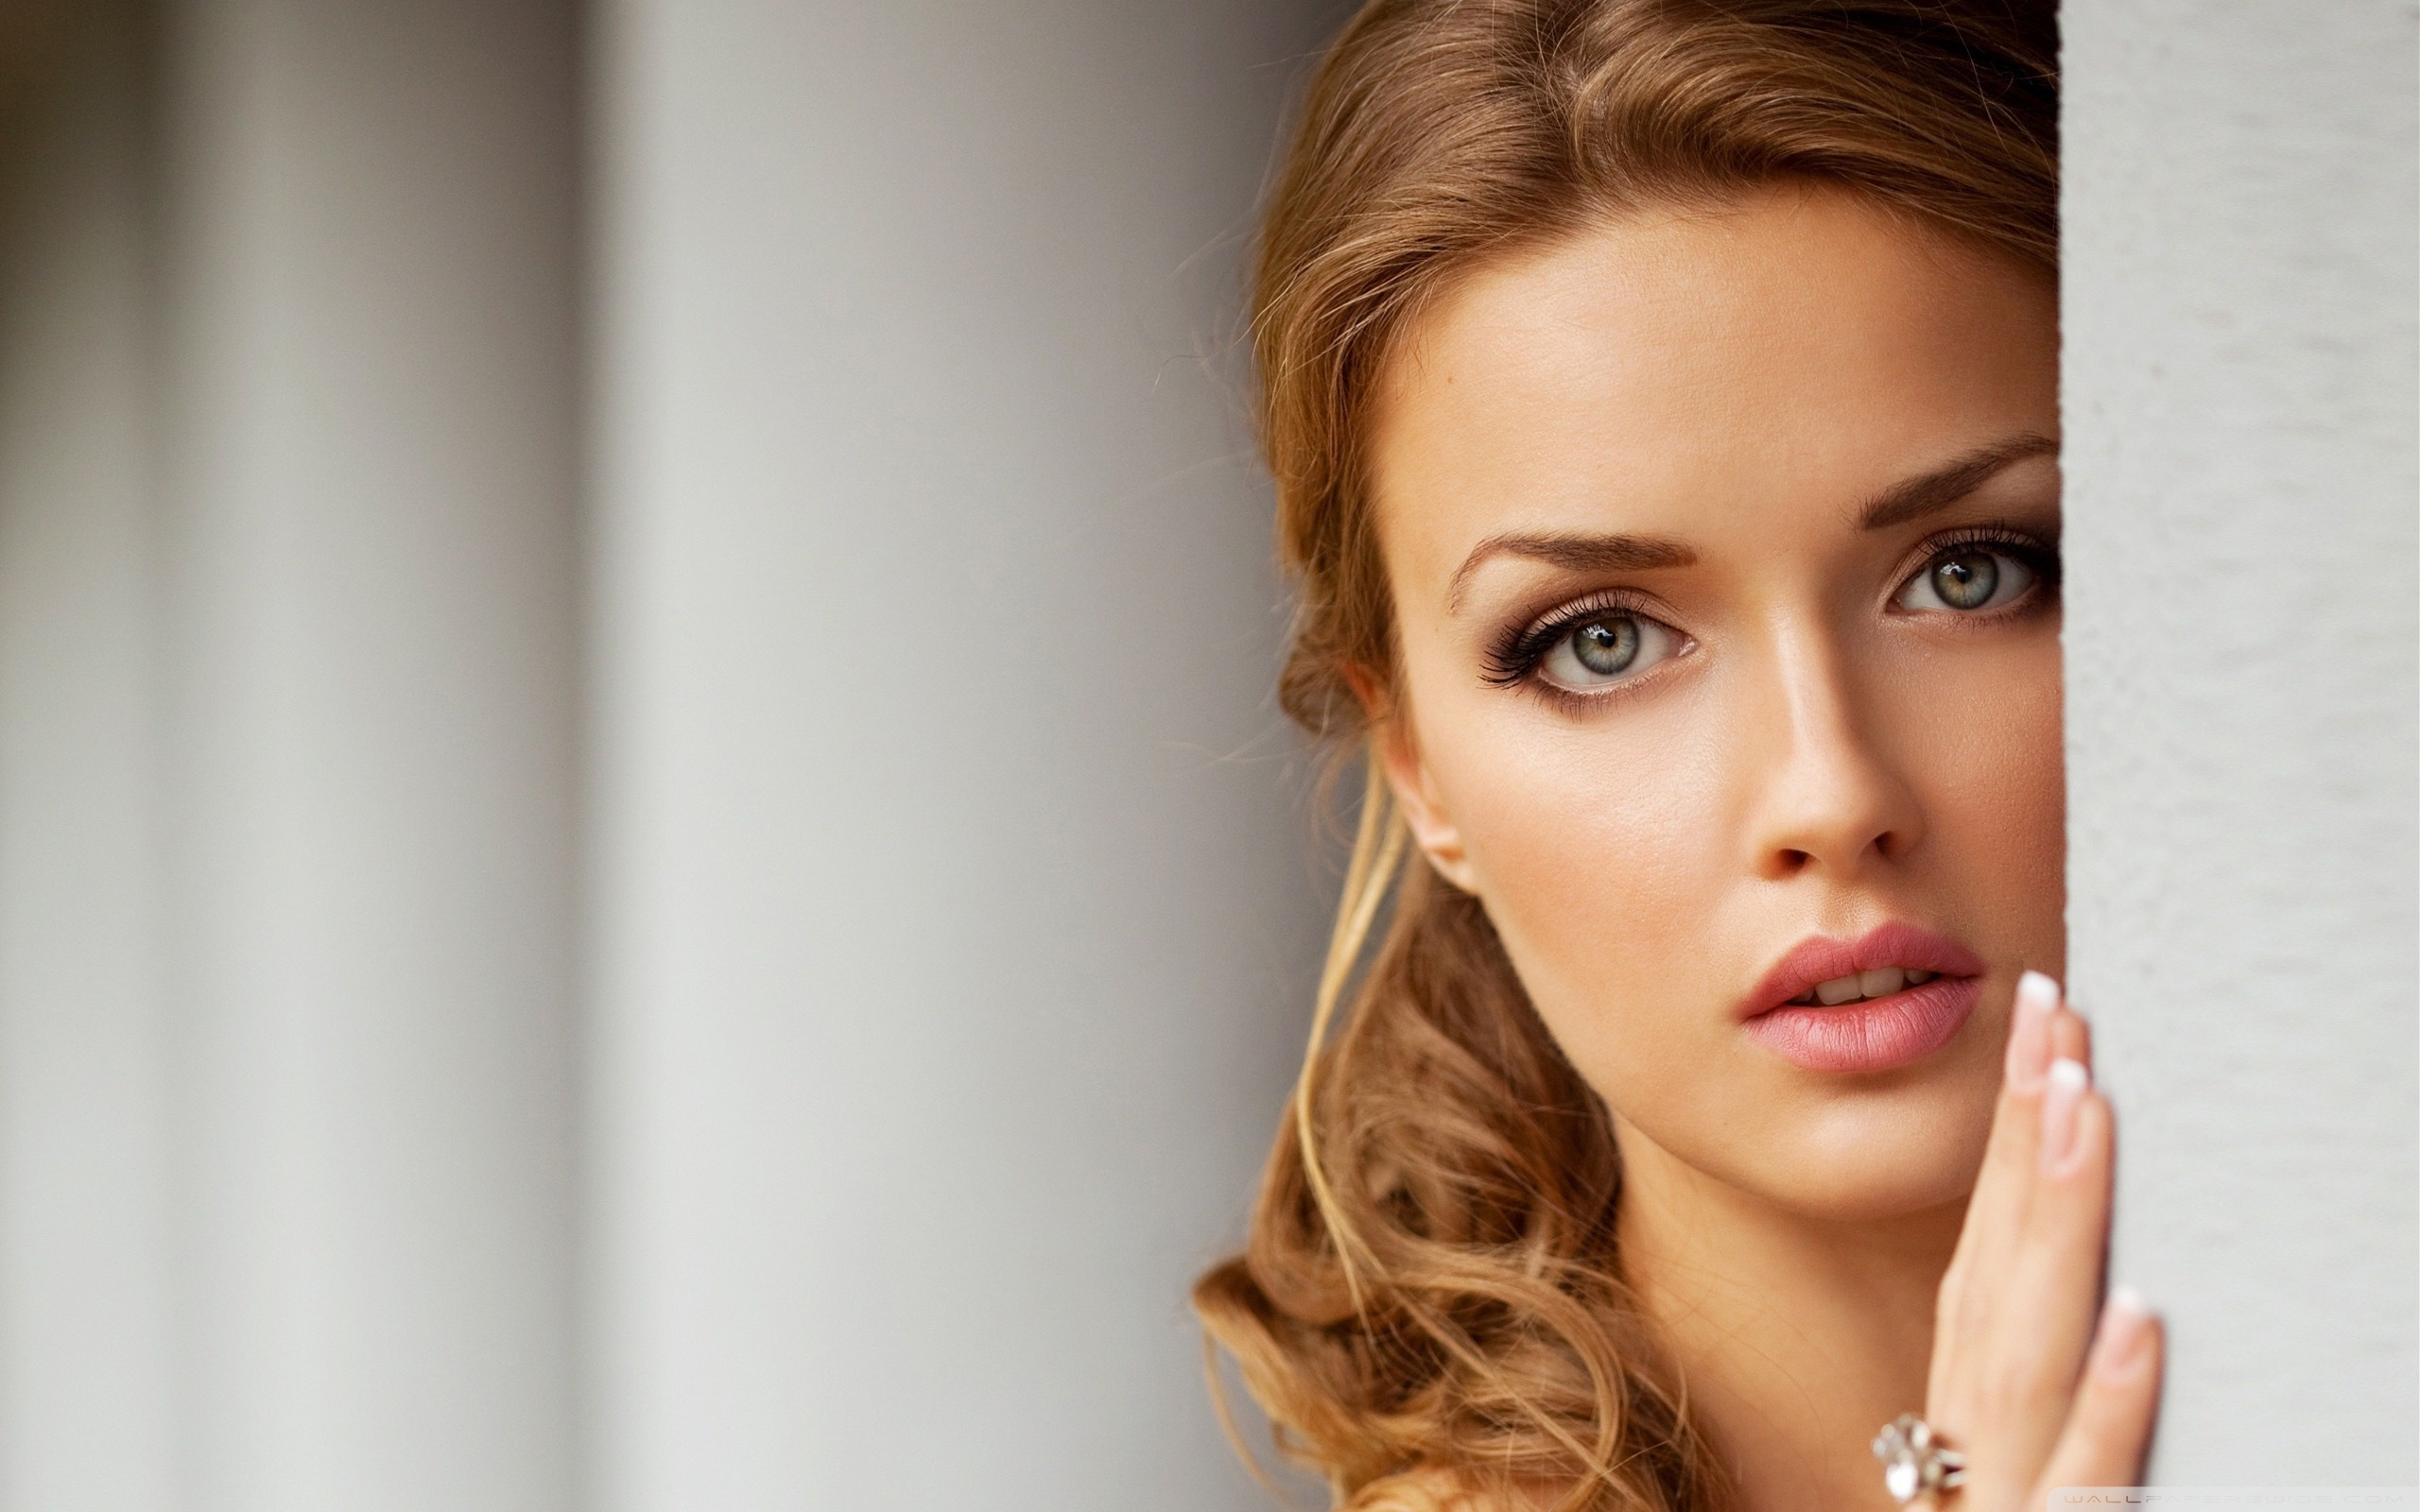 40 Beautiful And Sexy Girl Wallpaper Free To Download Godfather Style